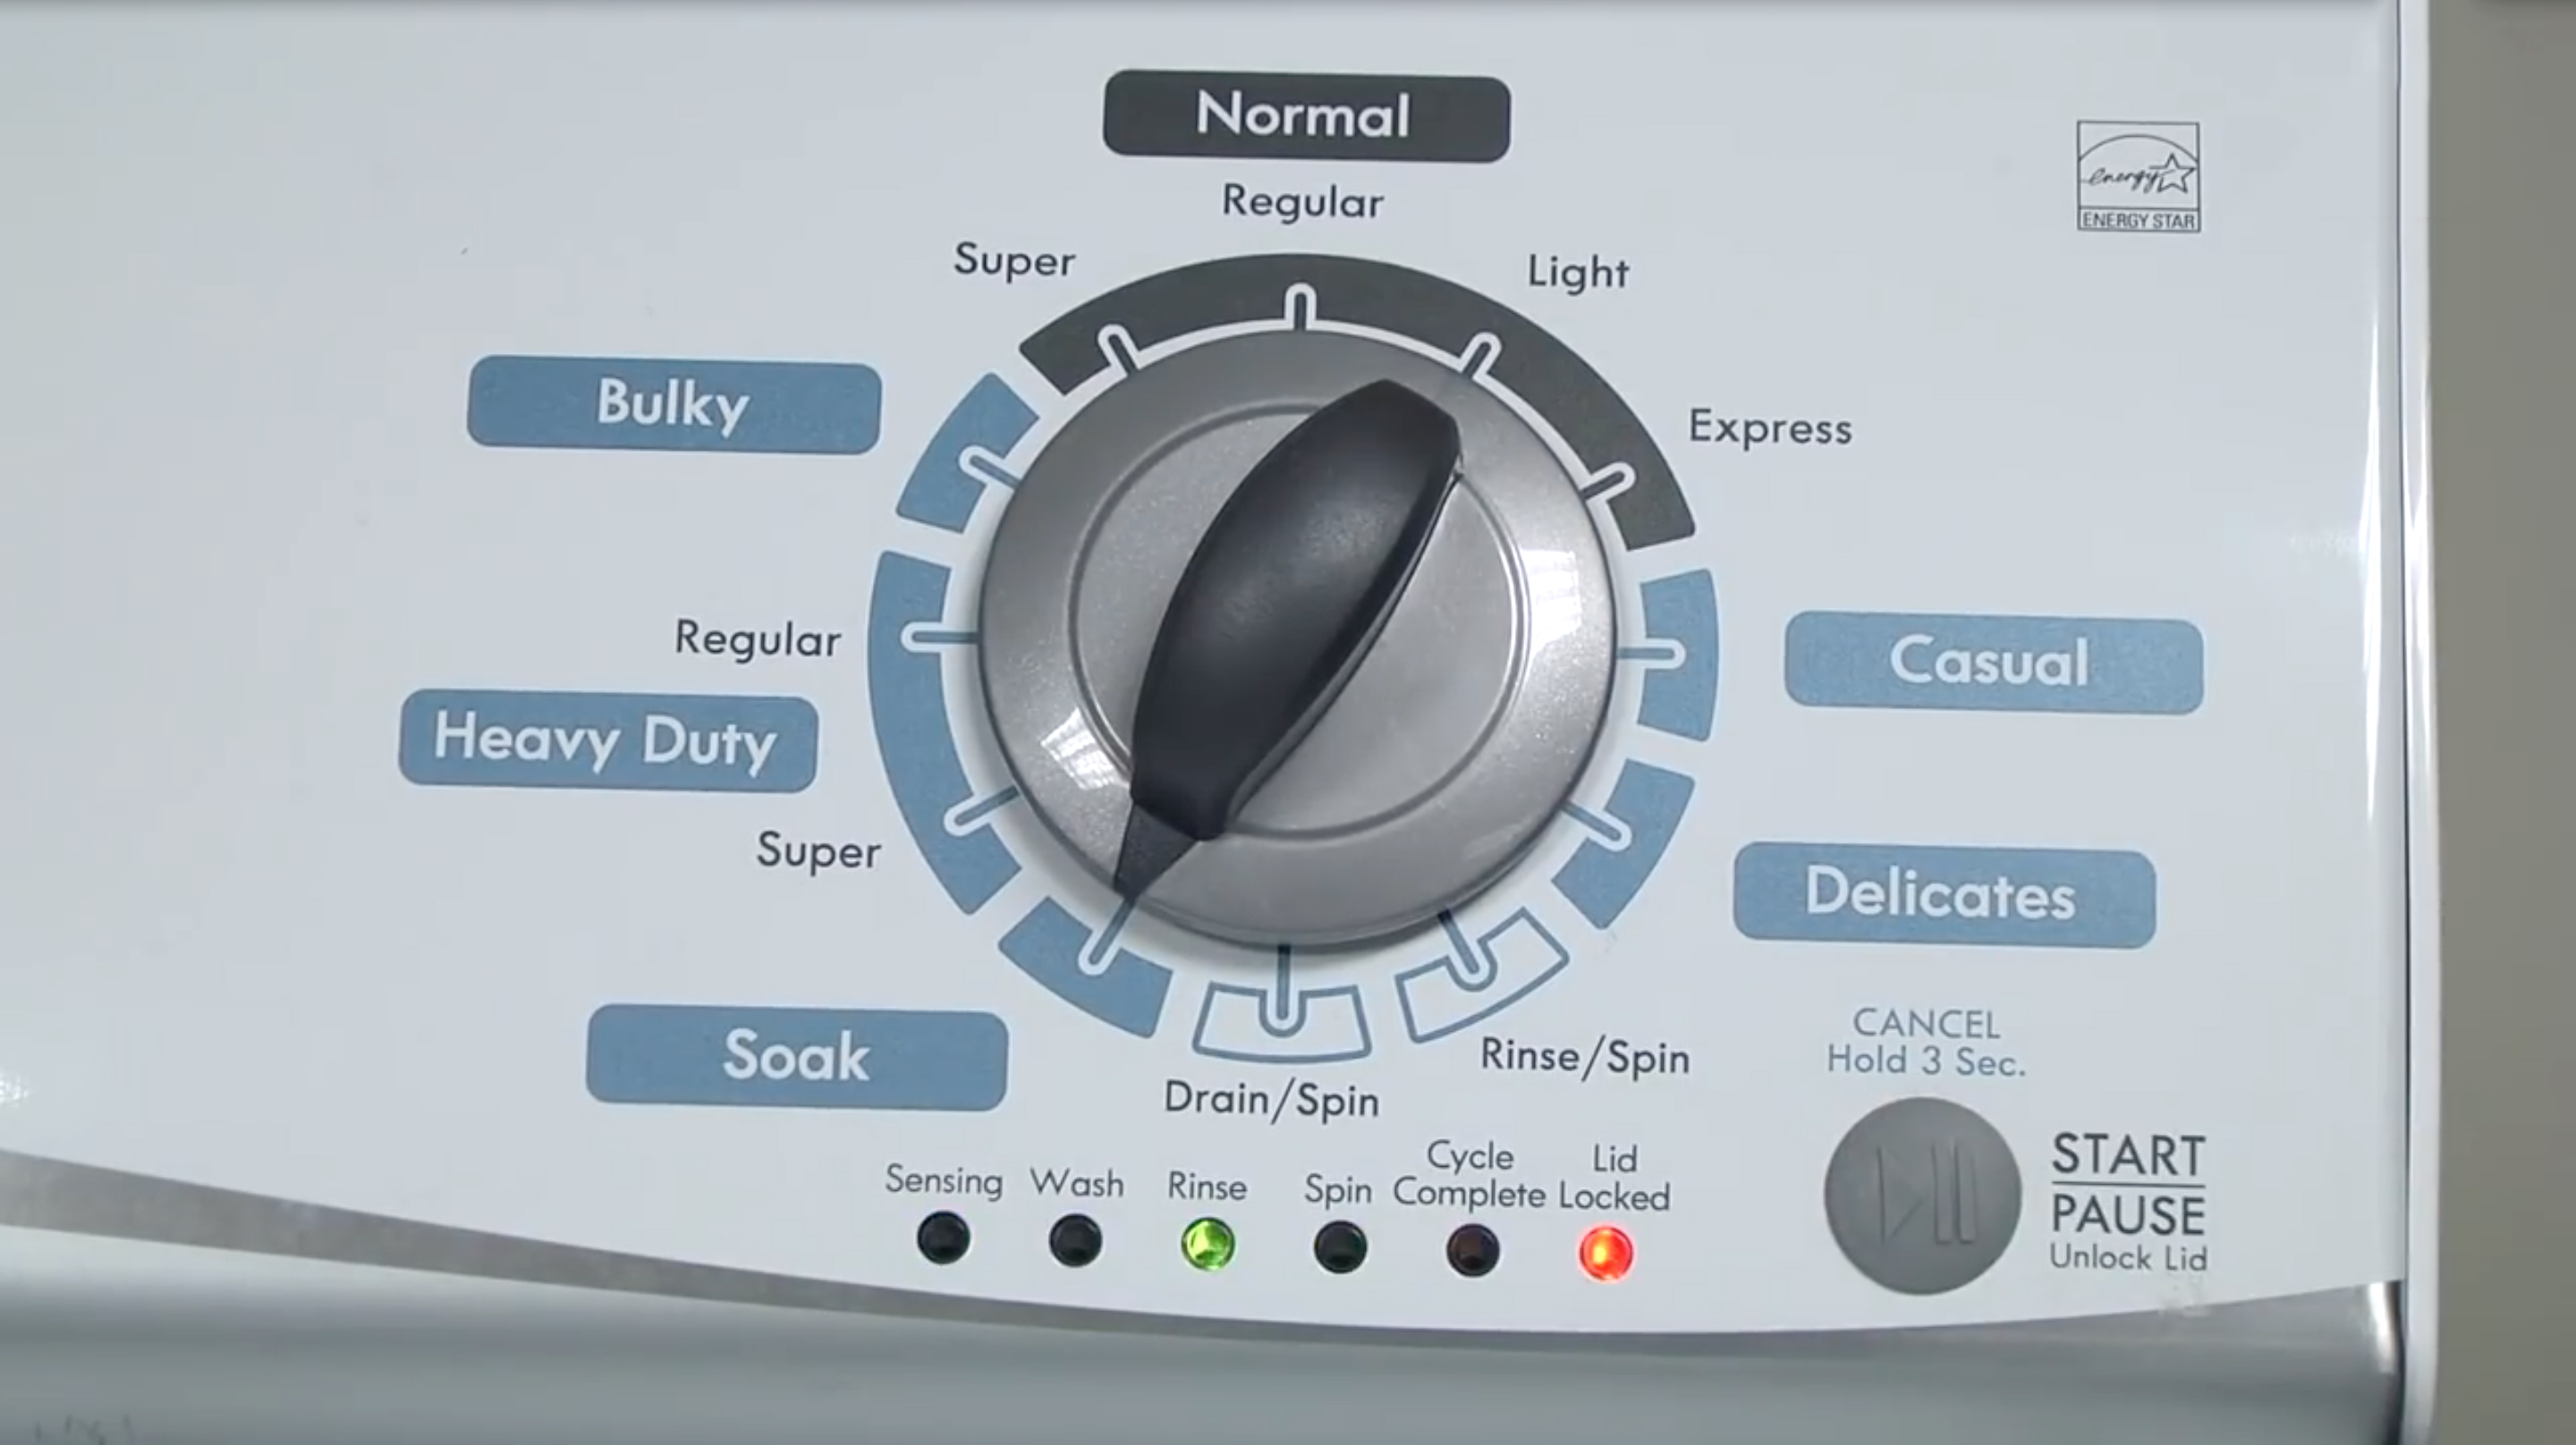 Troubleshooting a top-load washer that won't drain or spin